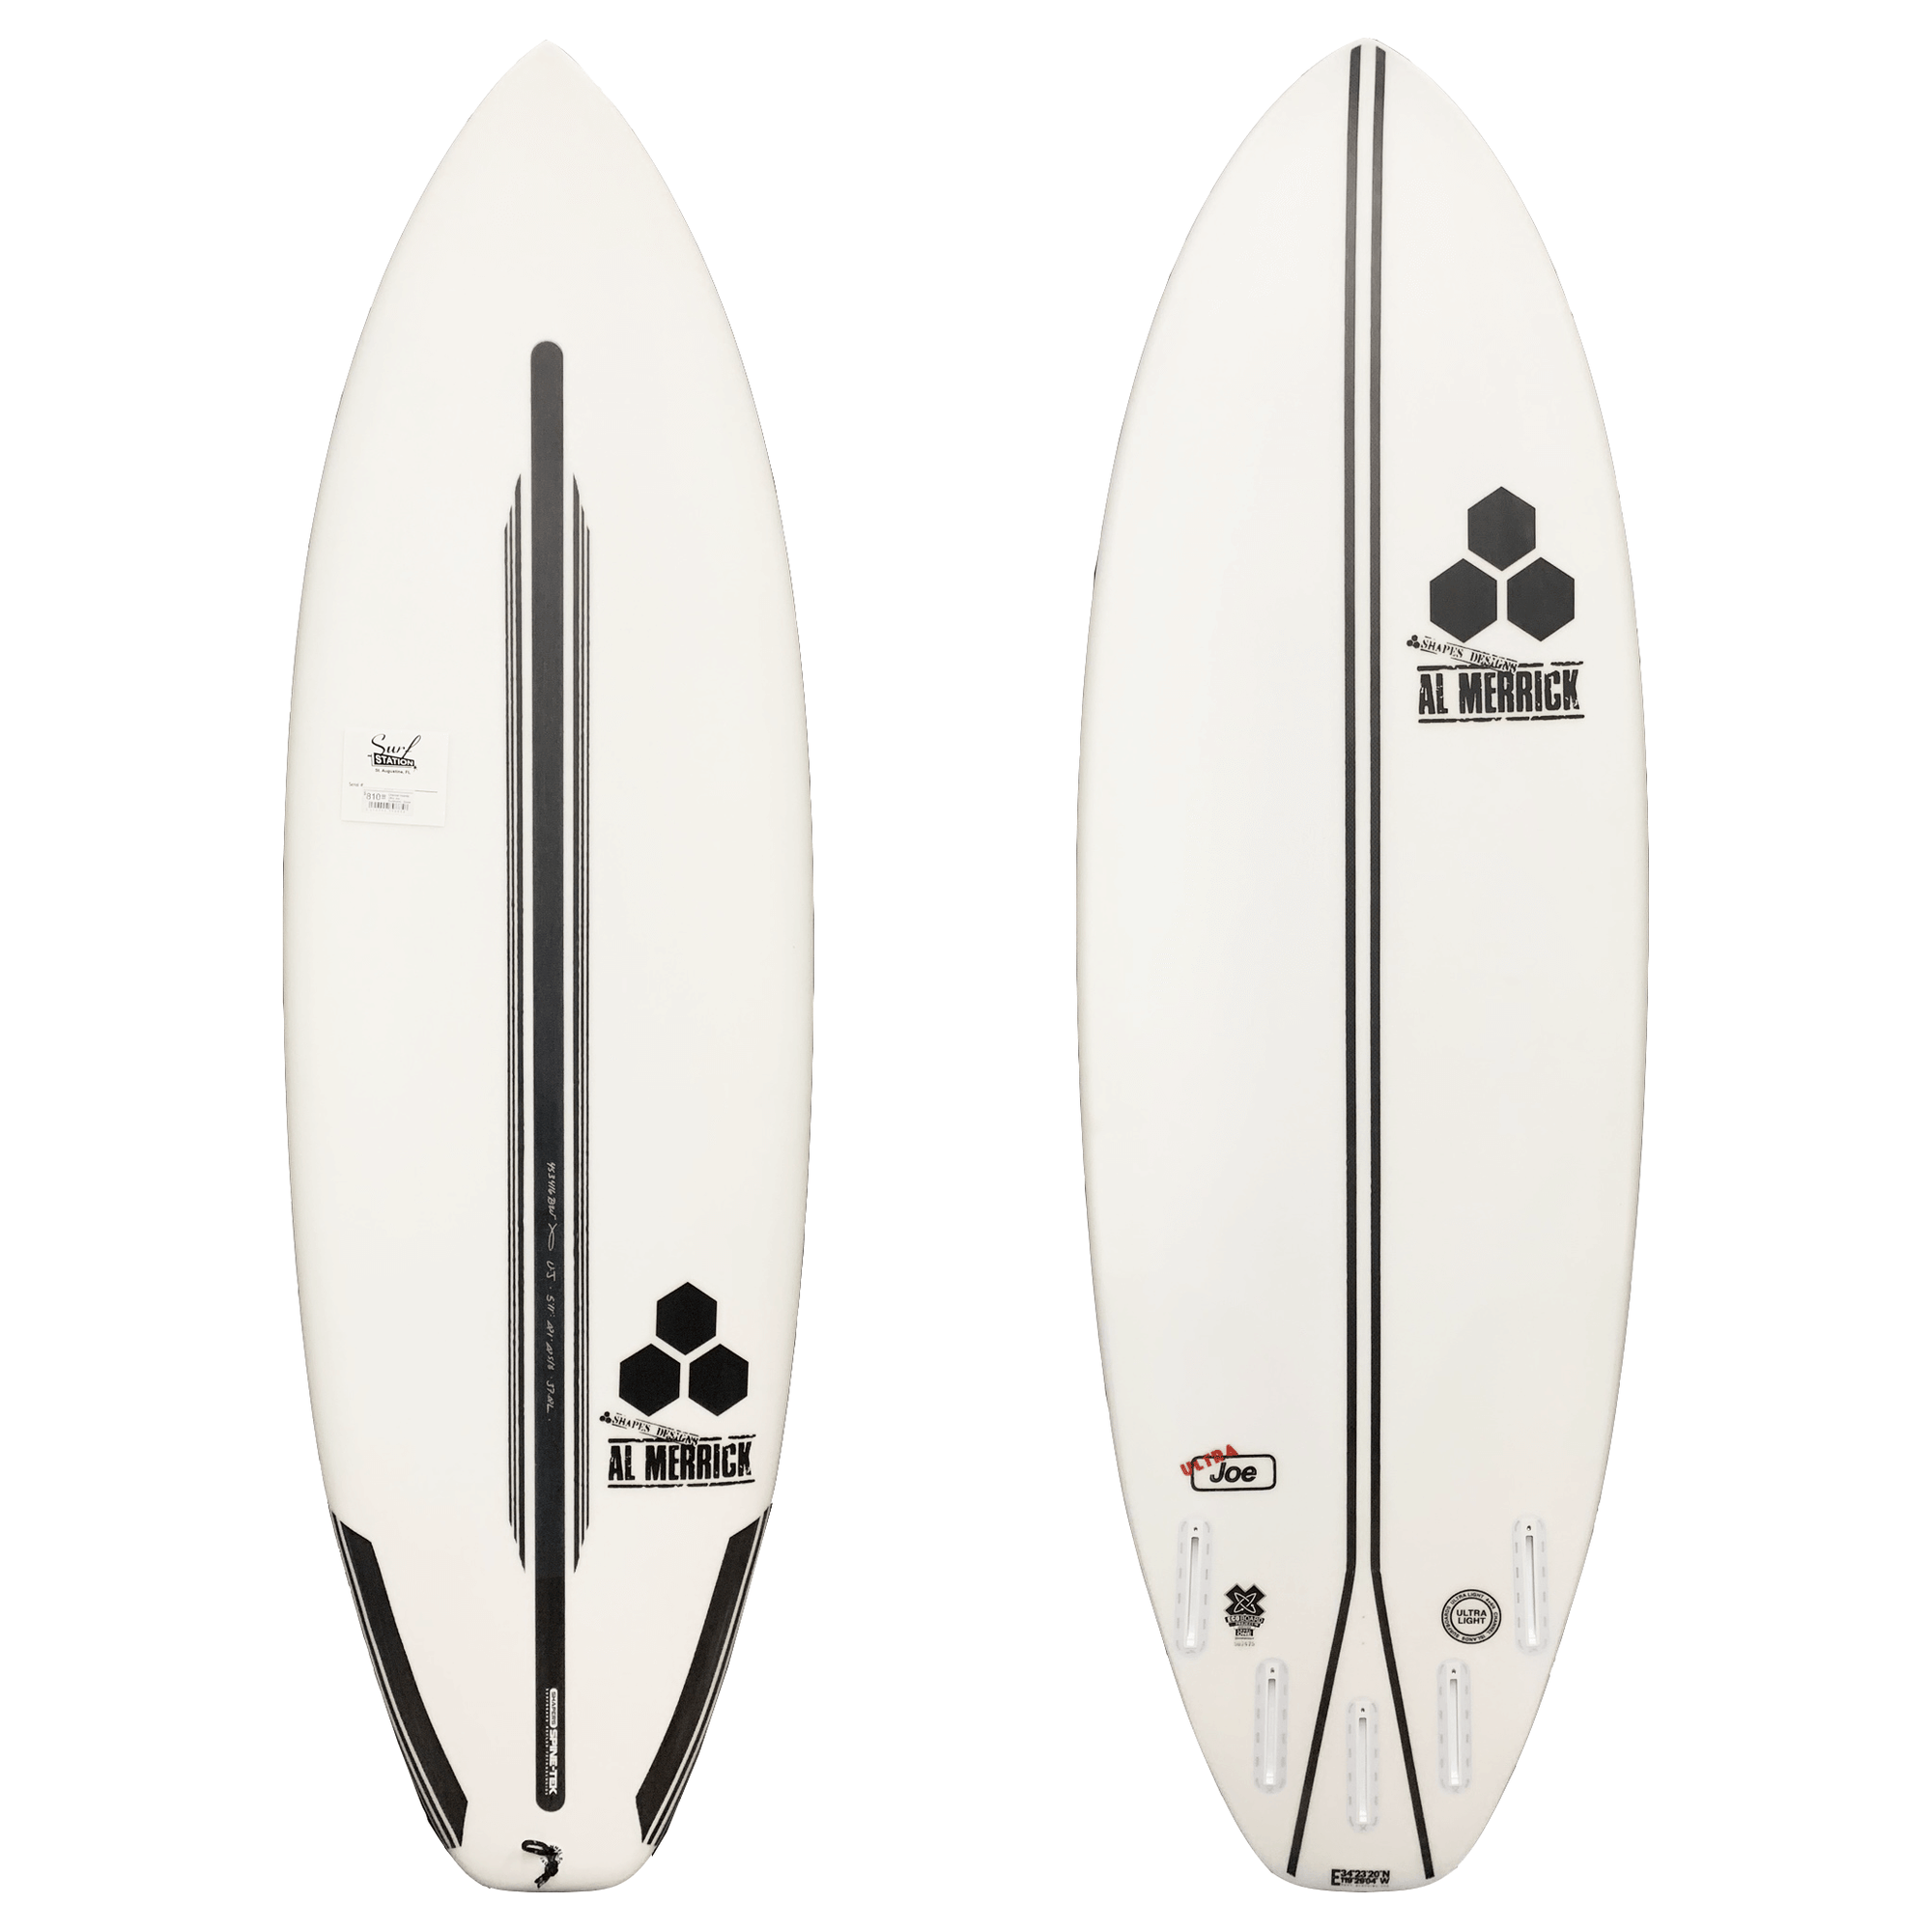 Channel Islands Ultra Joe Spine-Tek Surfboard - Futures